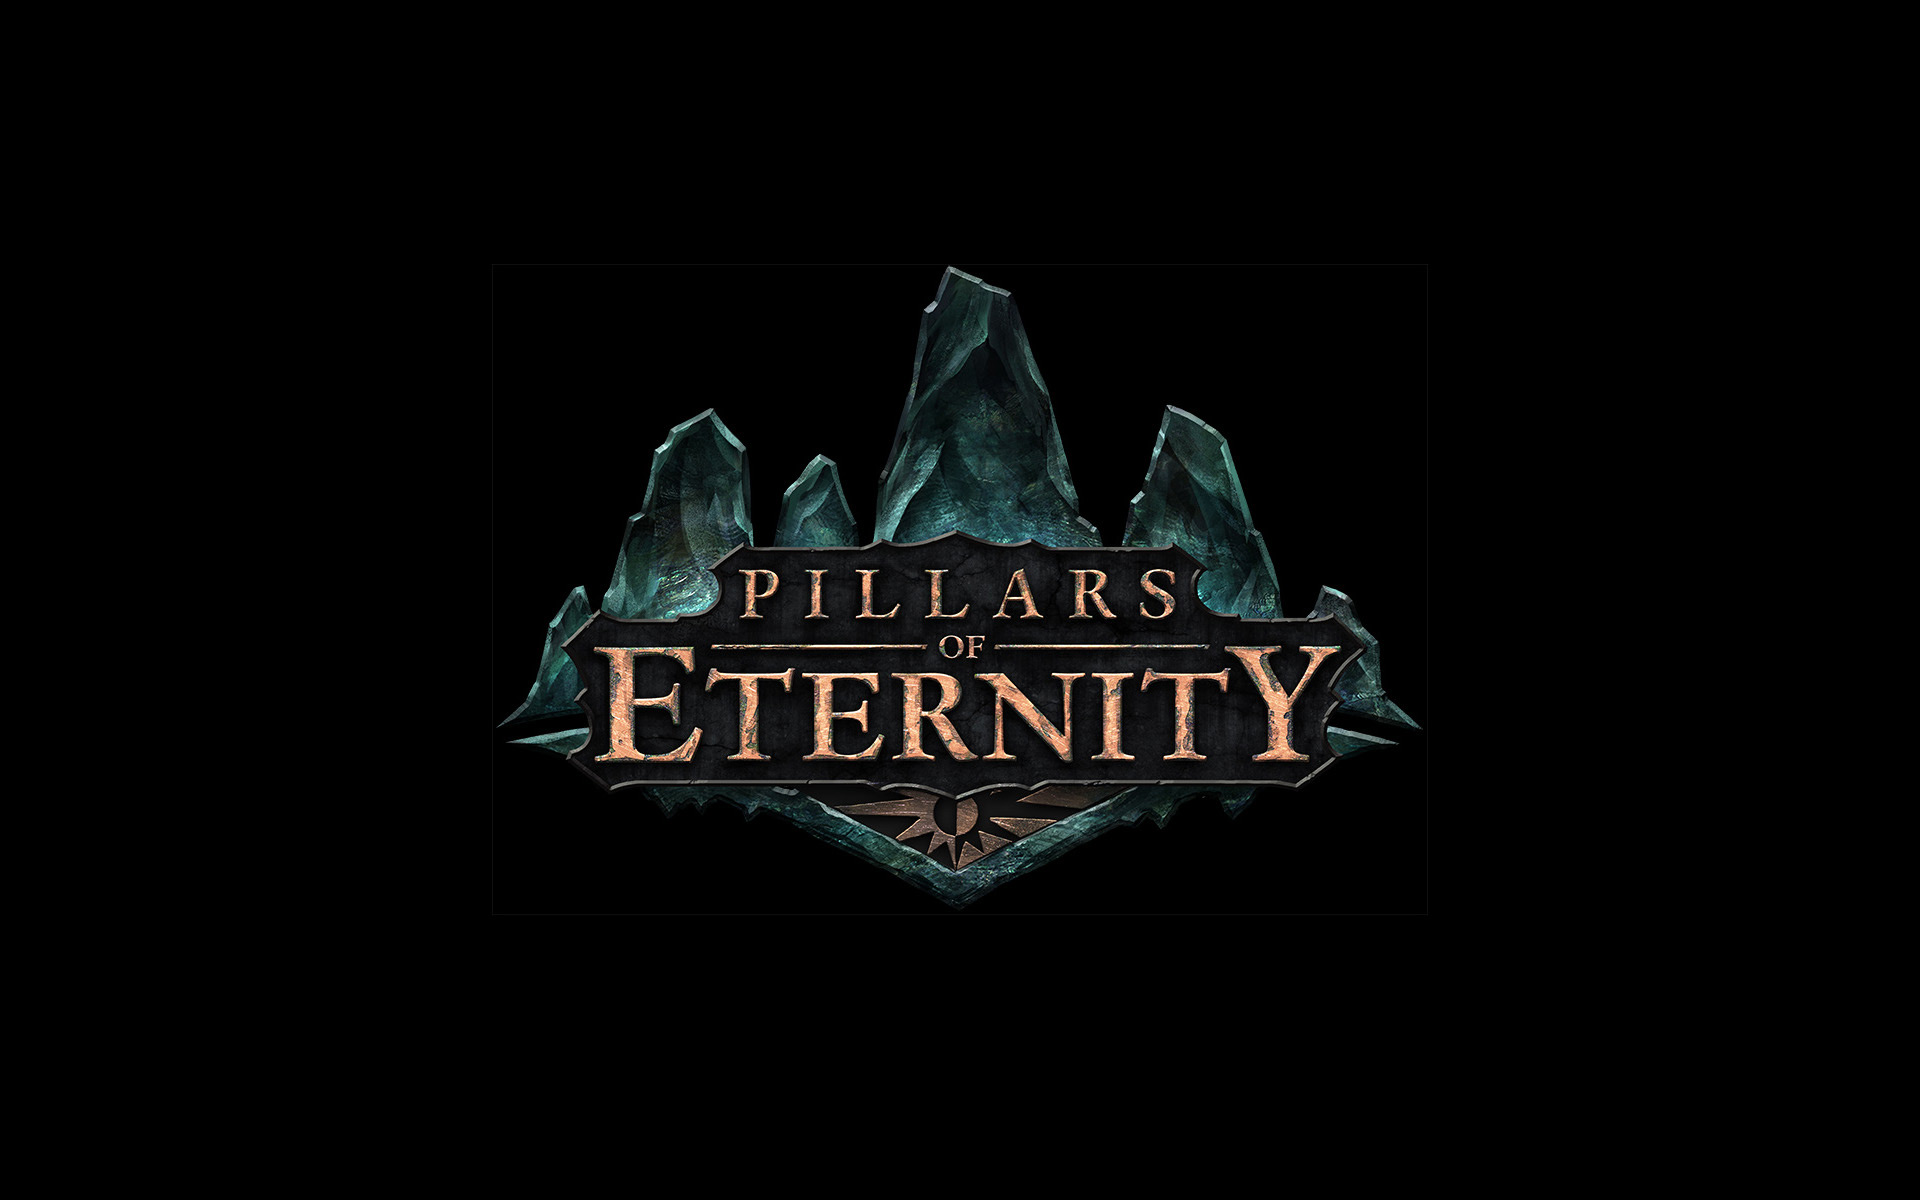 Pillars of Eternity is an RPG that was funded on Kickstarter and is going to be released soon.